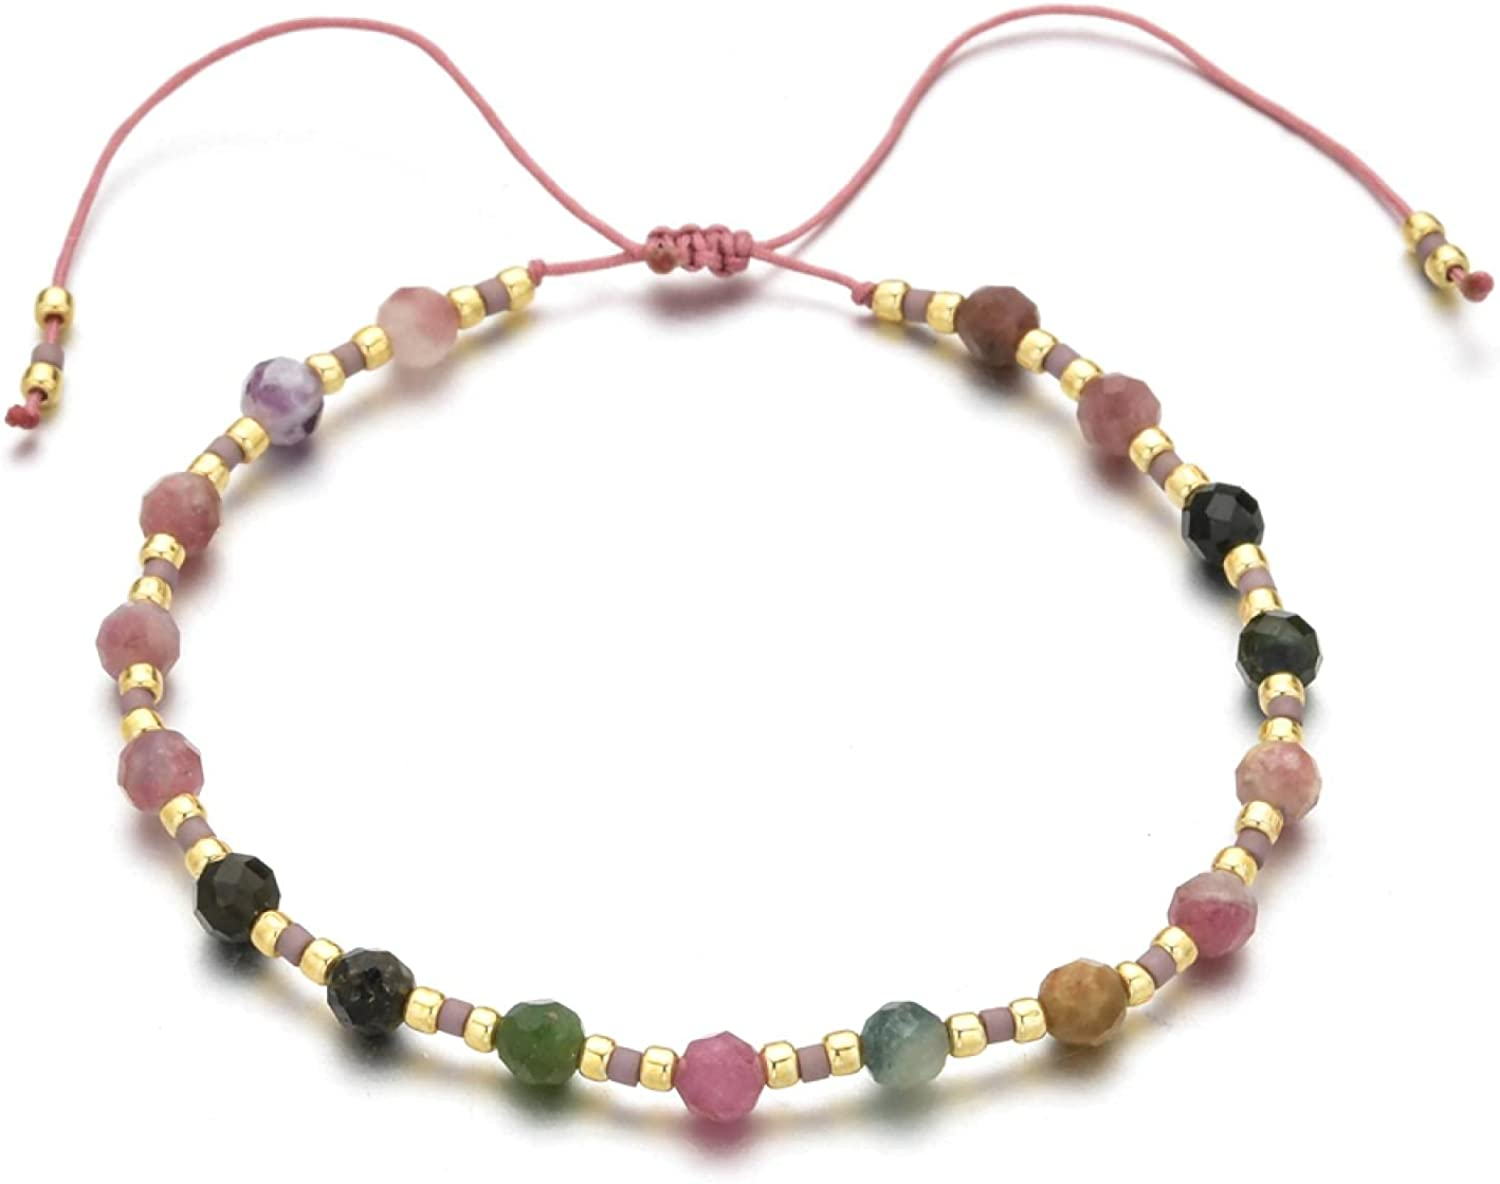 Bohemian Great interest Stone Beads Bracelet Hand-woven Discount mail order Jewellery Jewelry Charm